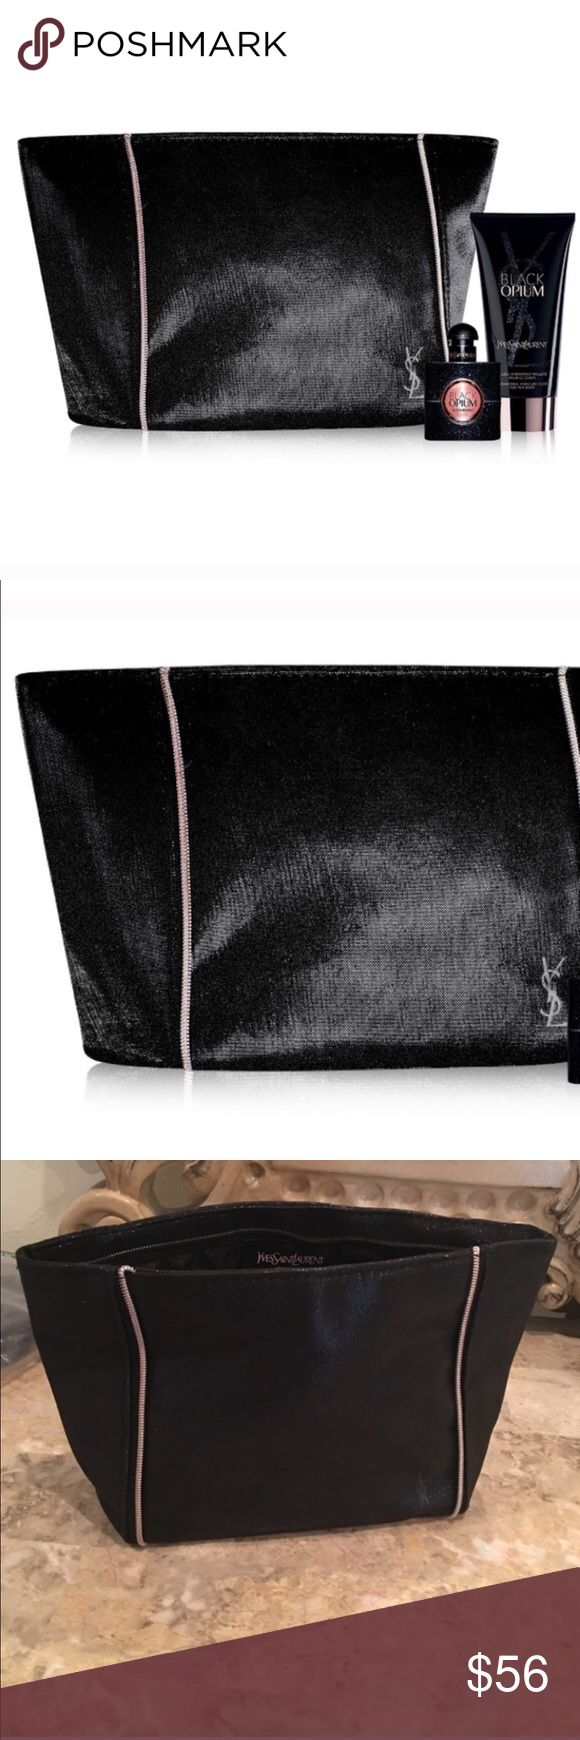 """YSL Cosmetic bag and set Authentic, brand new YSL beaute cosmetic shimmering bag from their limited addition black opium perfume. Listing is for everything shown the bag, the perfume and lotion for $69. NWOT. 10 1/2""""x6""""x 3 1/2"""" Yves Saint Laurent Bags Cosmetic Bags & Cases"""